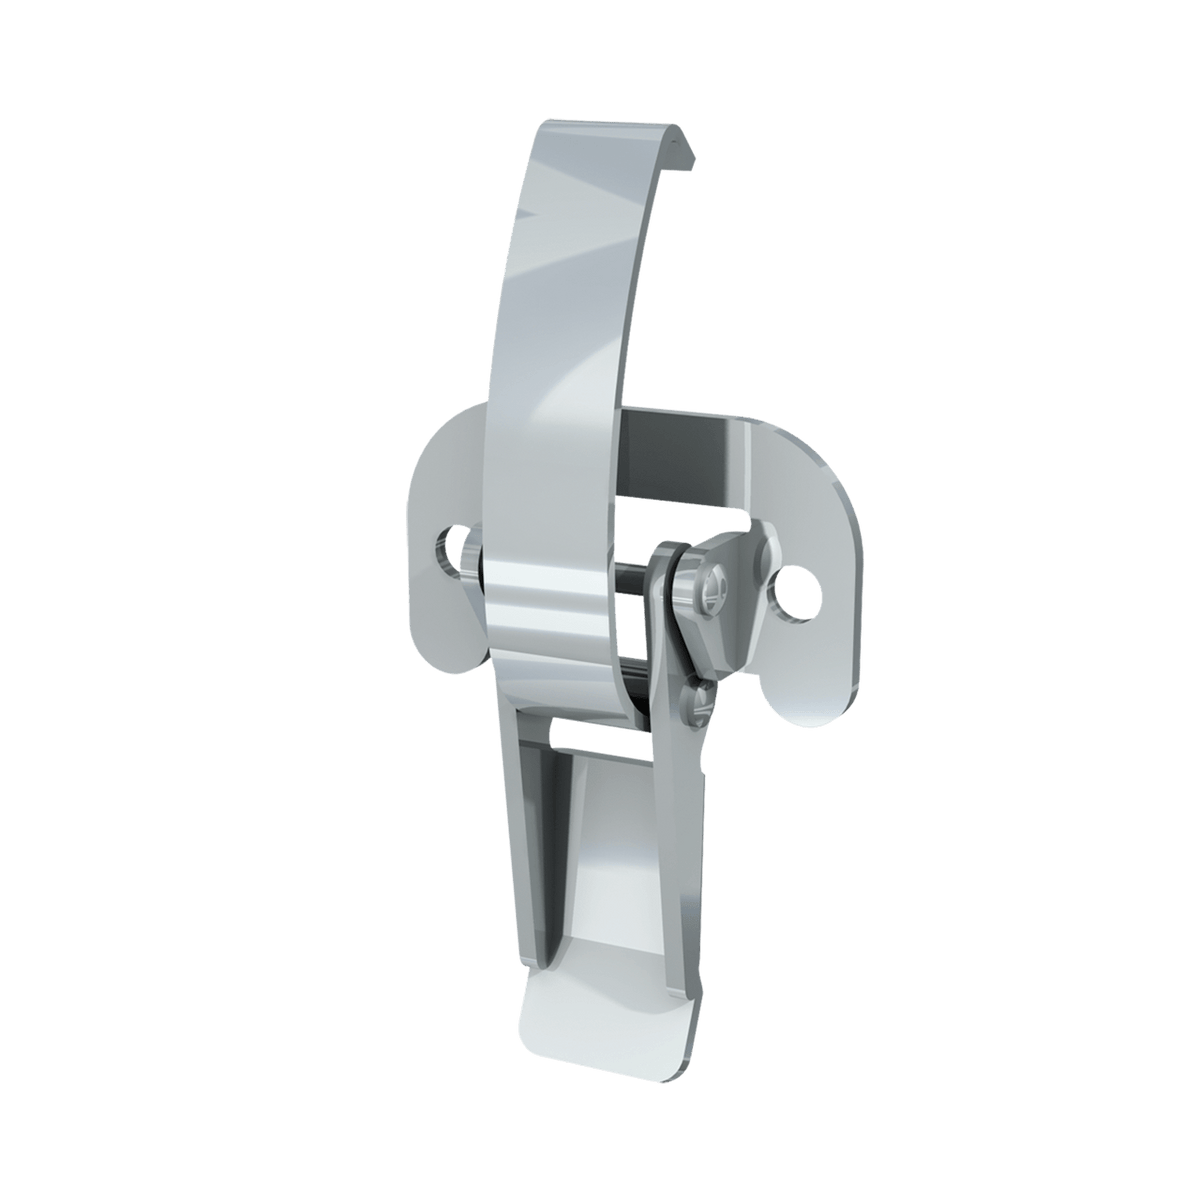 Render of Lever Operated Drawlatch (with flat mounting plate)